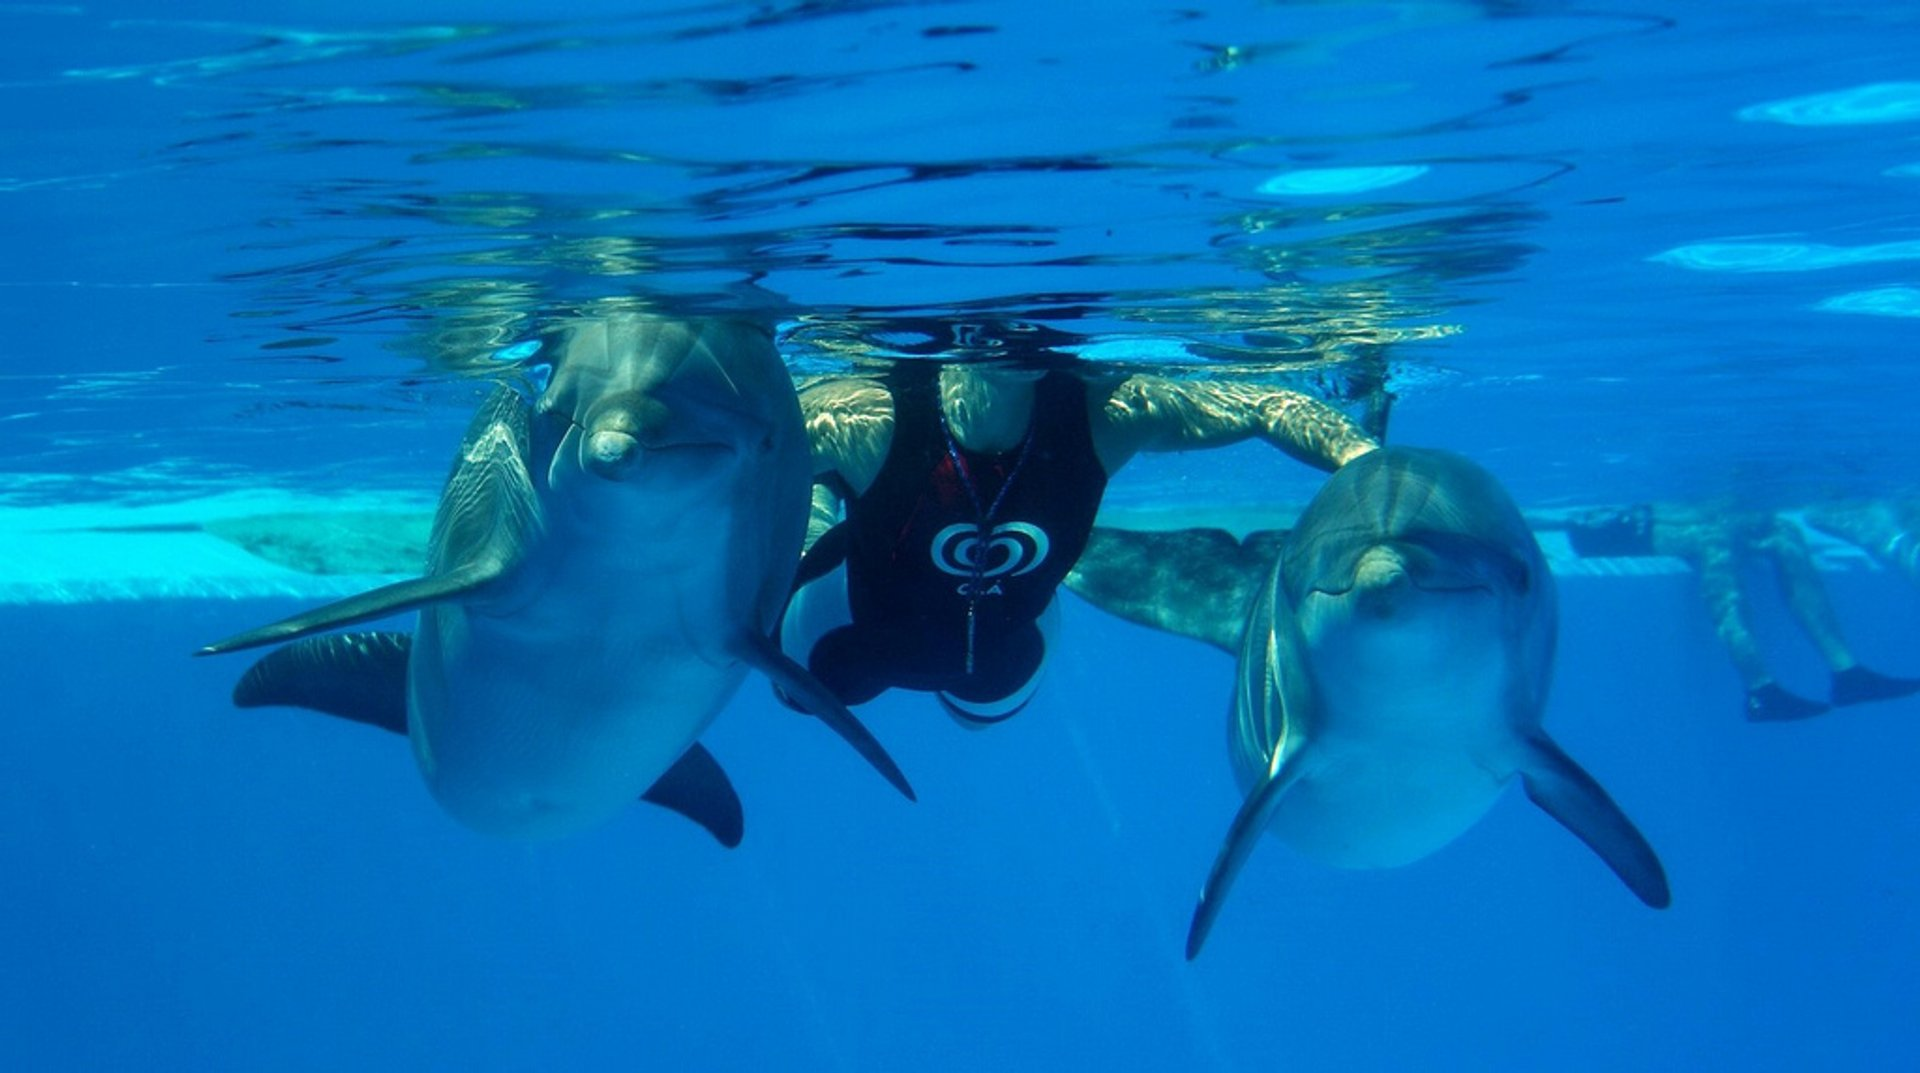 Swimming with Dolphins in Portugal 2020 - Best Time